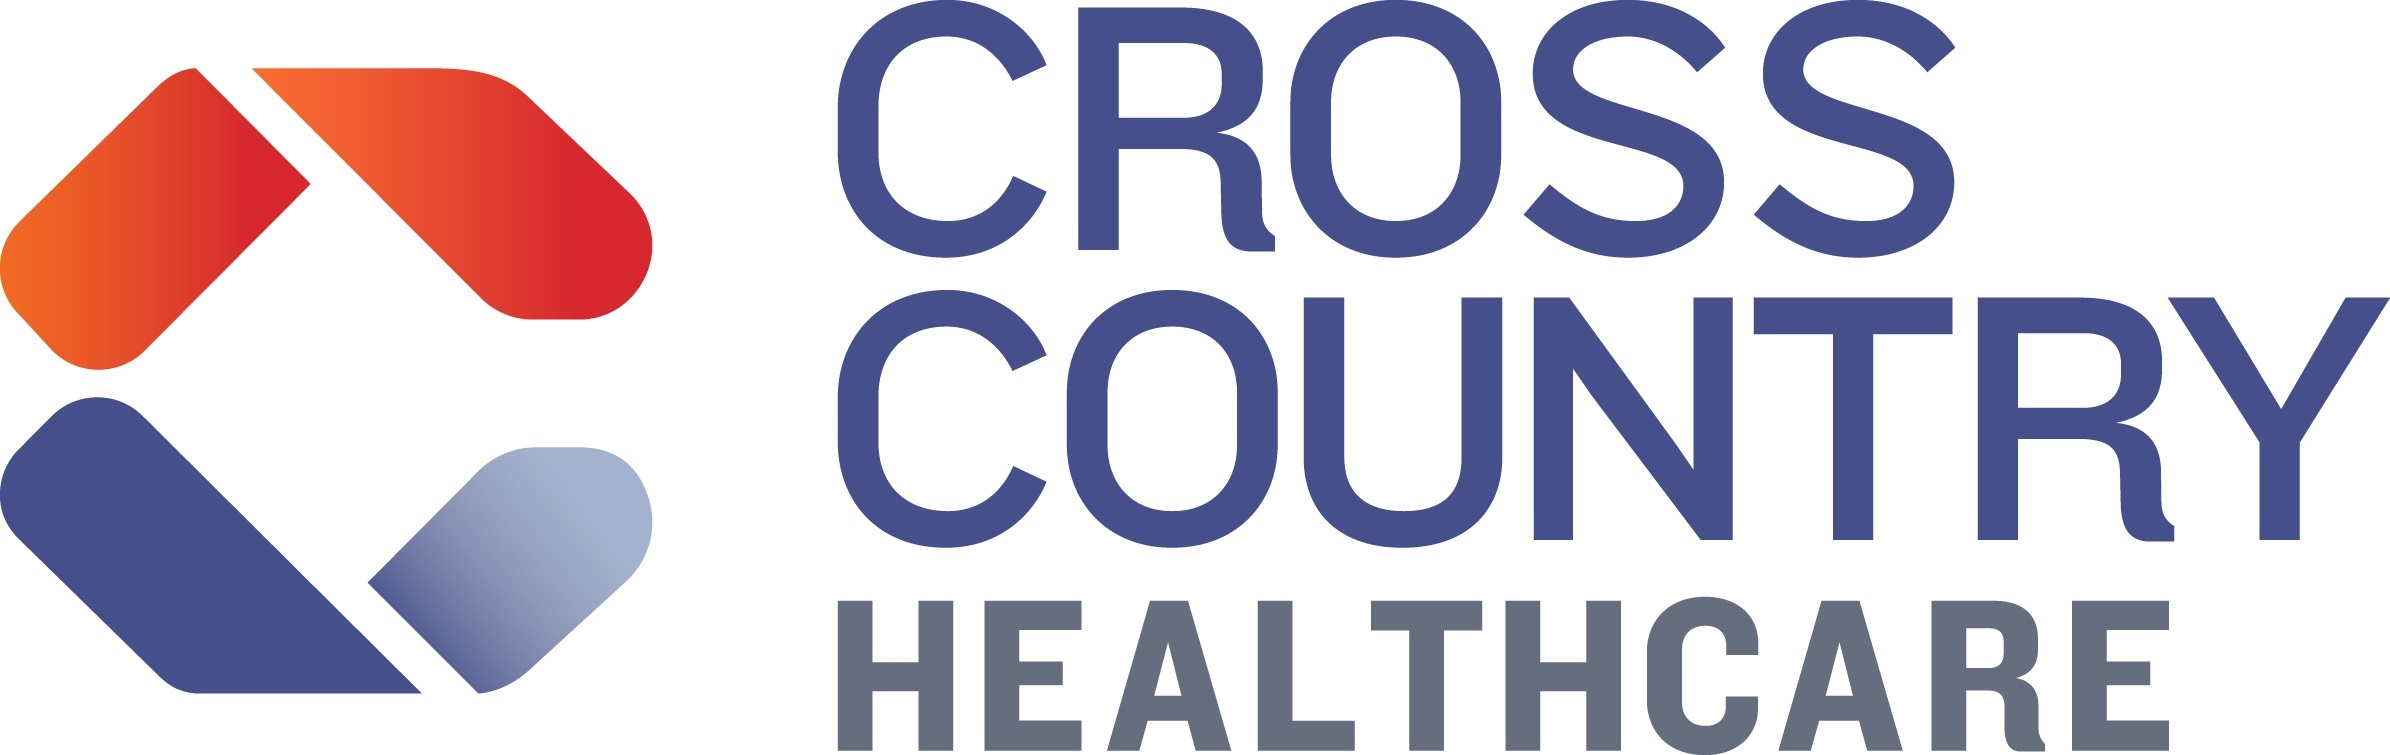 Cross Country Healthcare logo